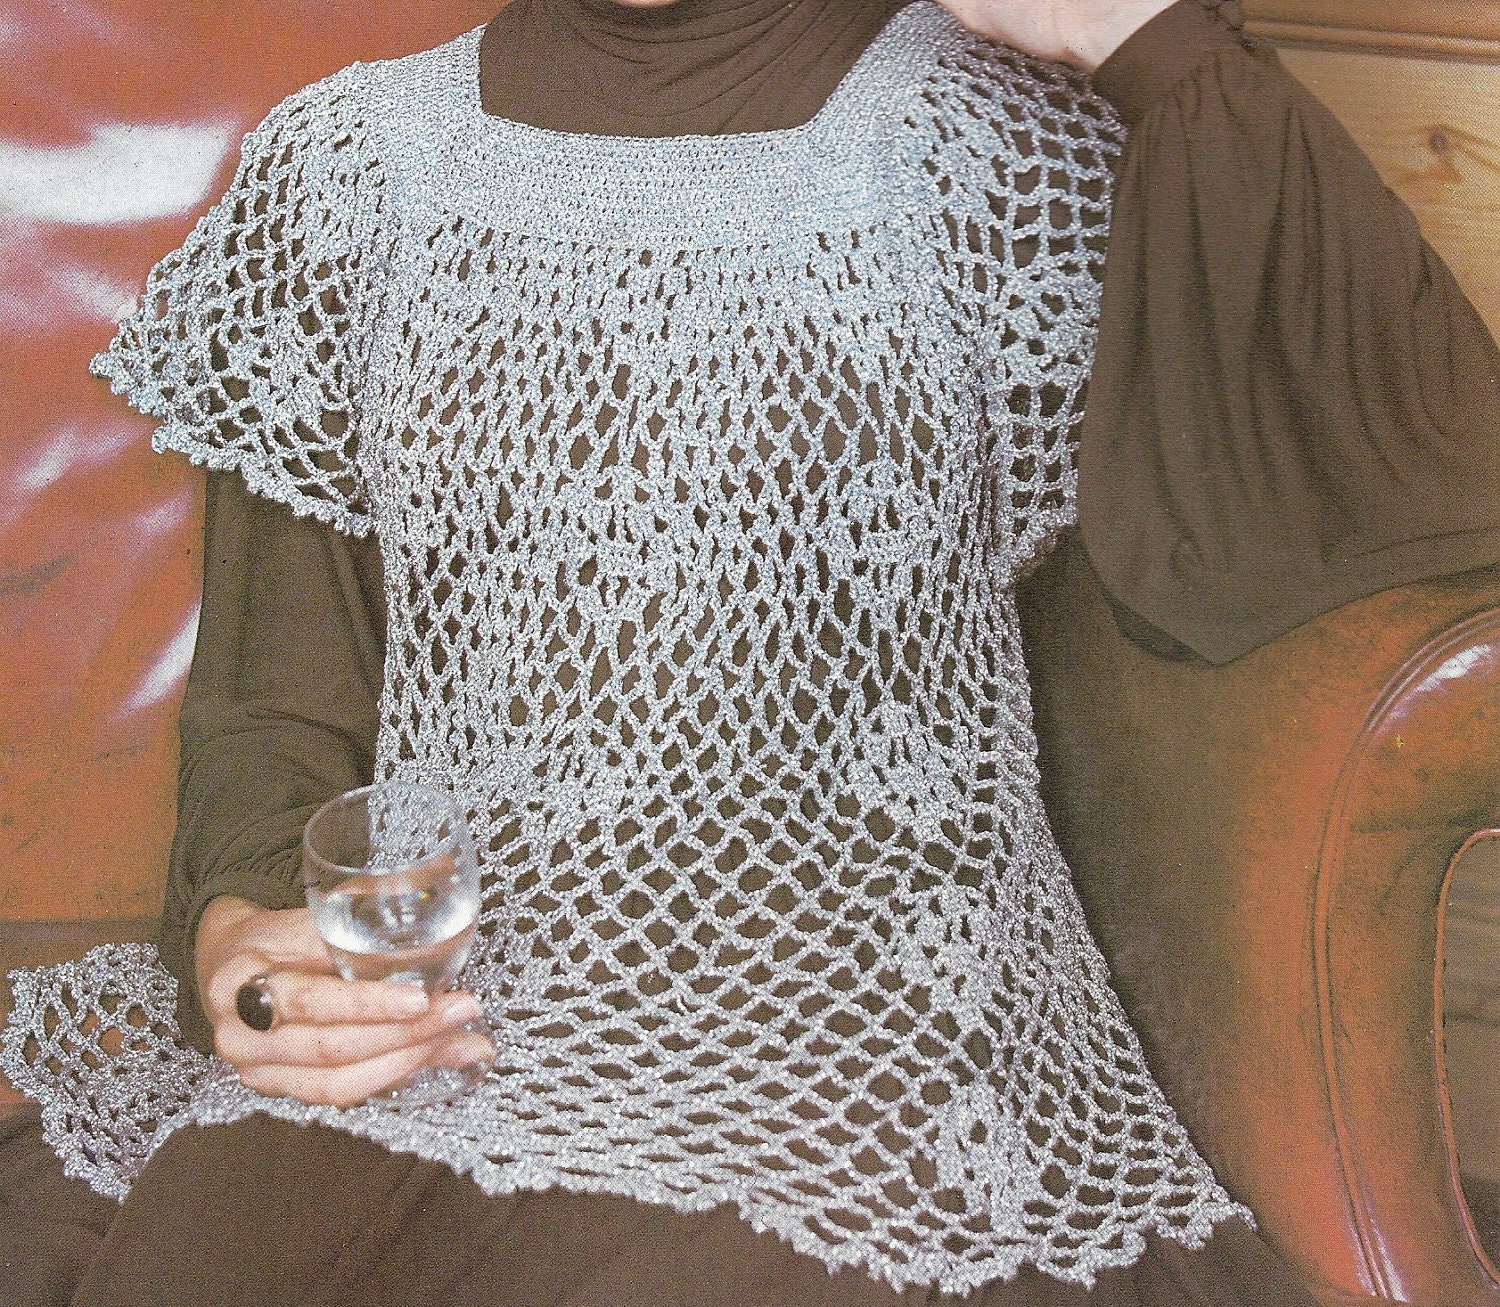 Crochet Patterns Ladies : Vintage Crochet Pattern Ladies Smock Top Pattern Crochet